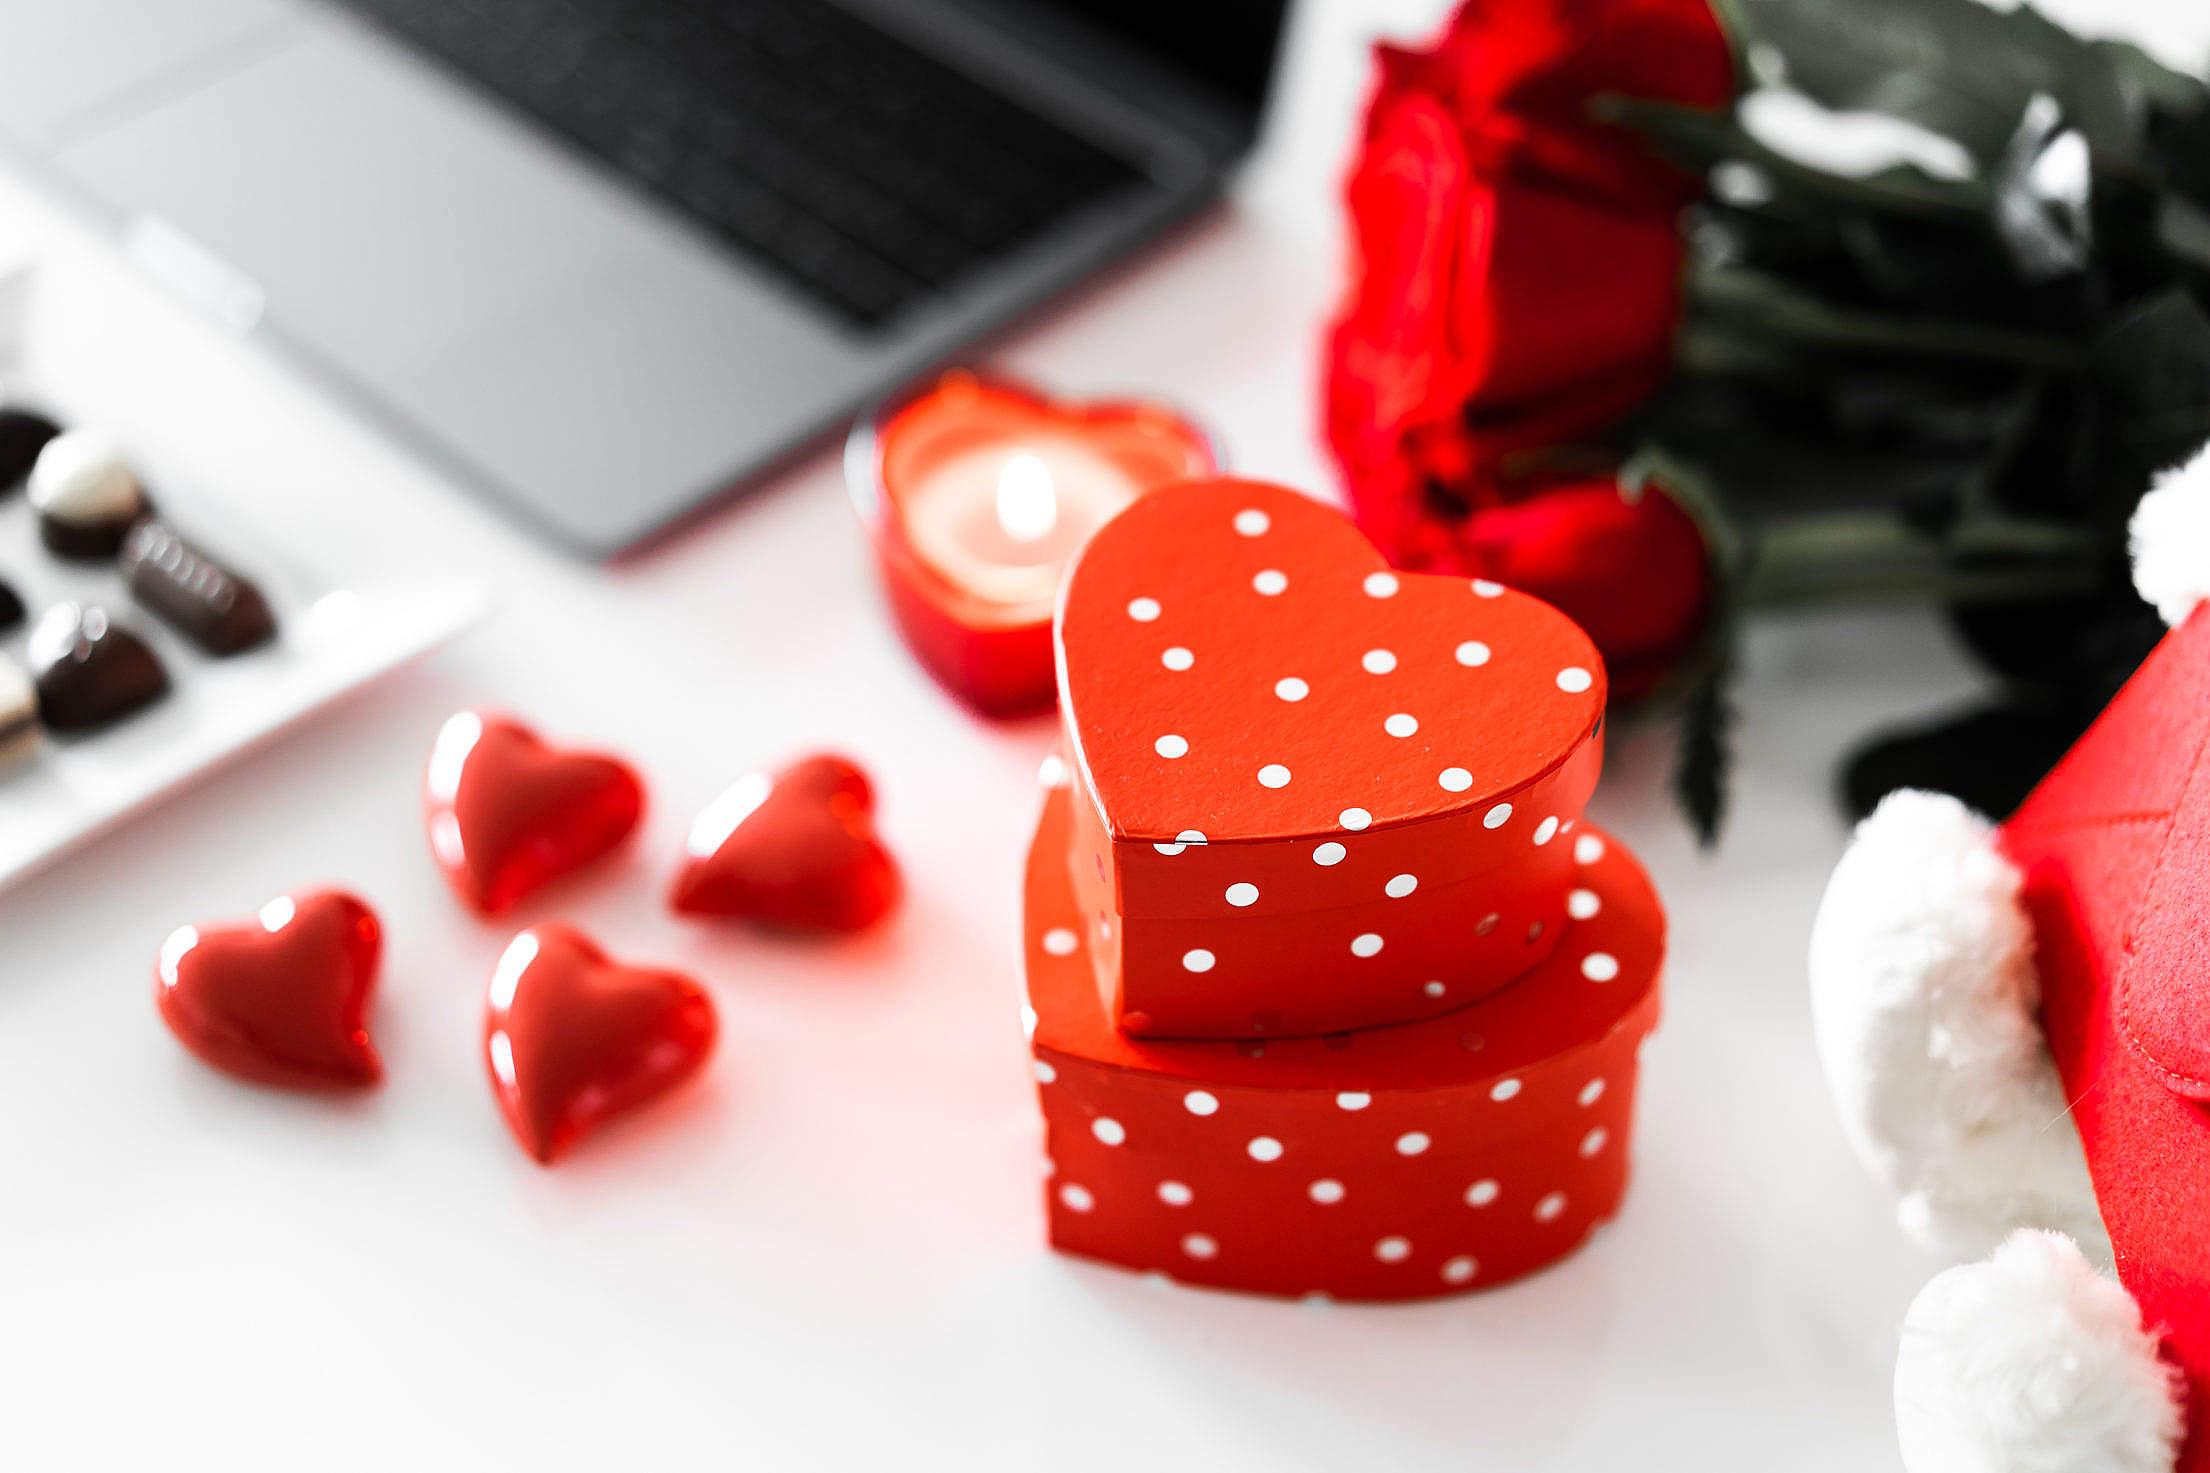 Valentine's Day Heart Shaped Gift Boxes Free Stock Photo